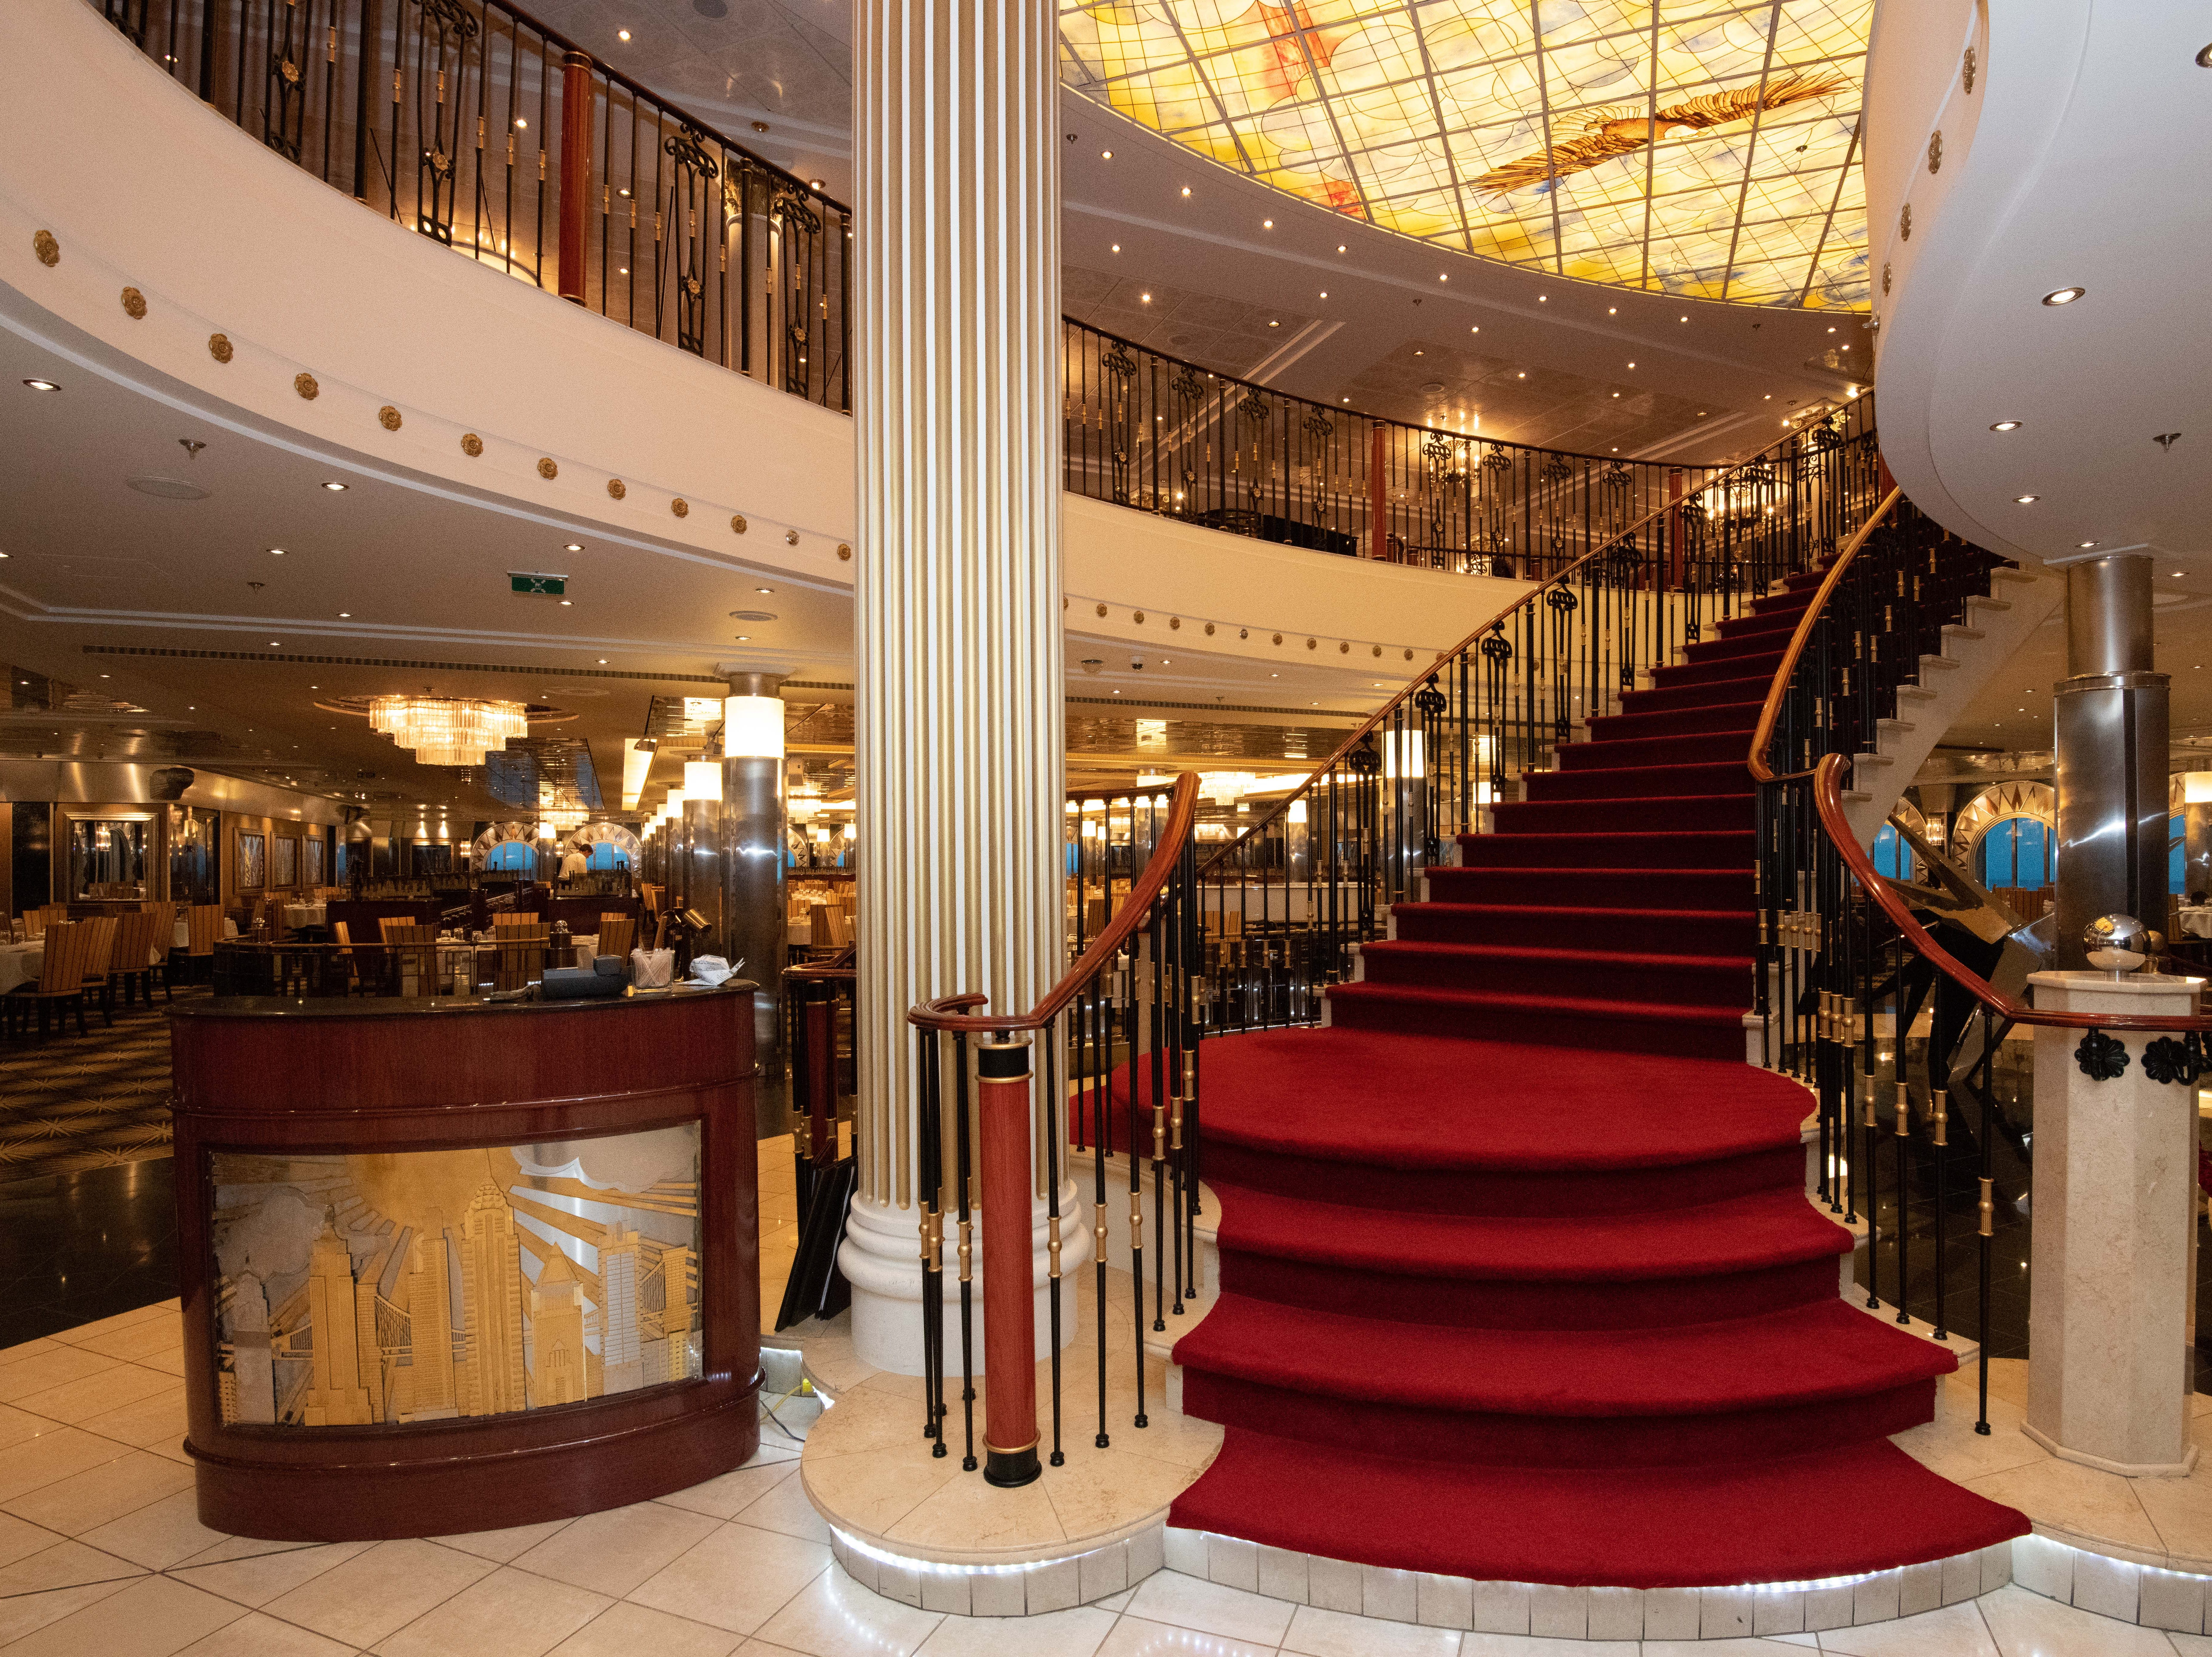 A stairway near the entrance to the Skyline Main Dining Room leads up to Pride of America's second-biggest complimentary restaurant, the Liberty Main Dining Room.